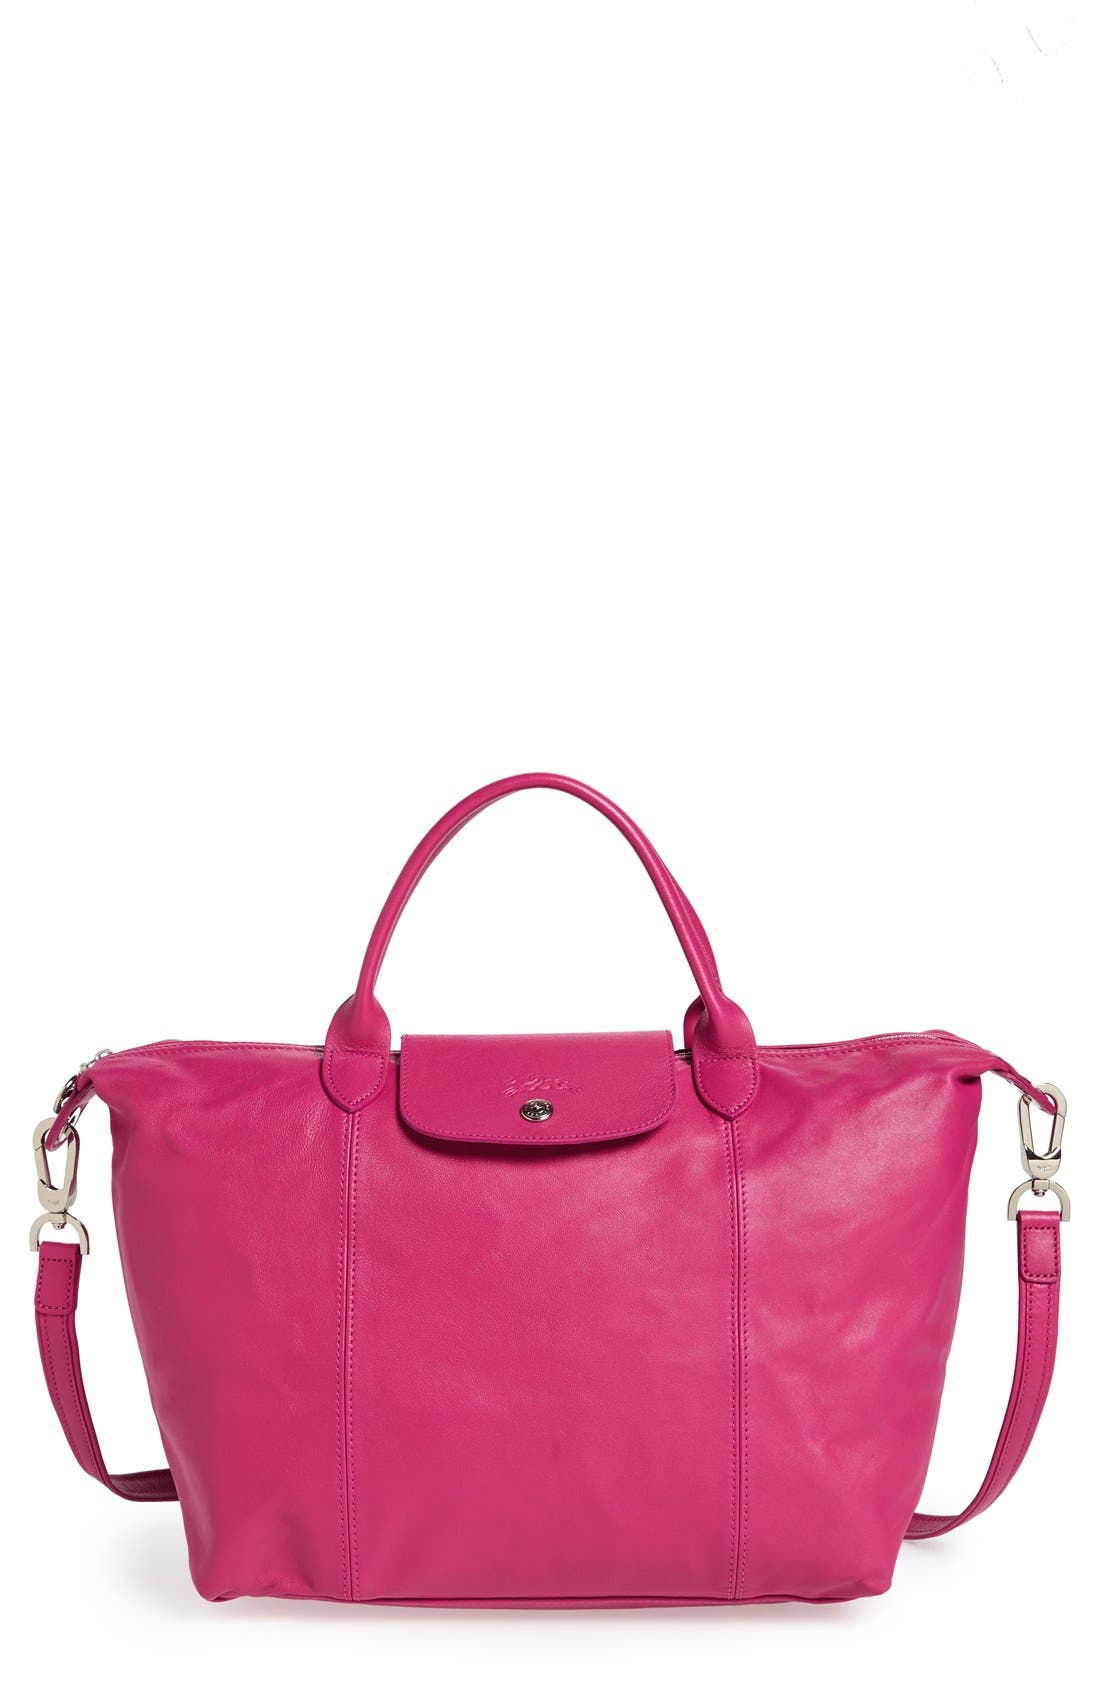 Medium 'Le Pliage Cuir' Leather Top Handle Tote,                             Main thumbnail 29, color,